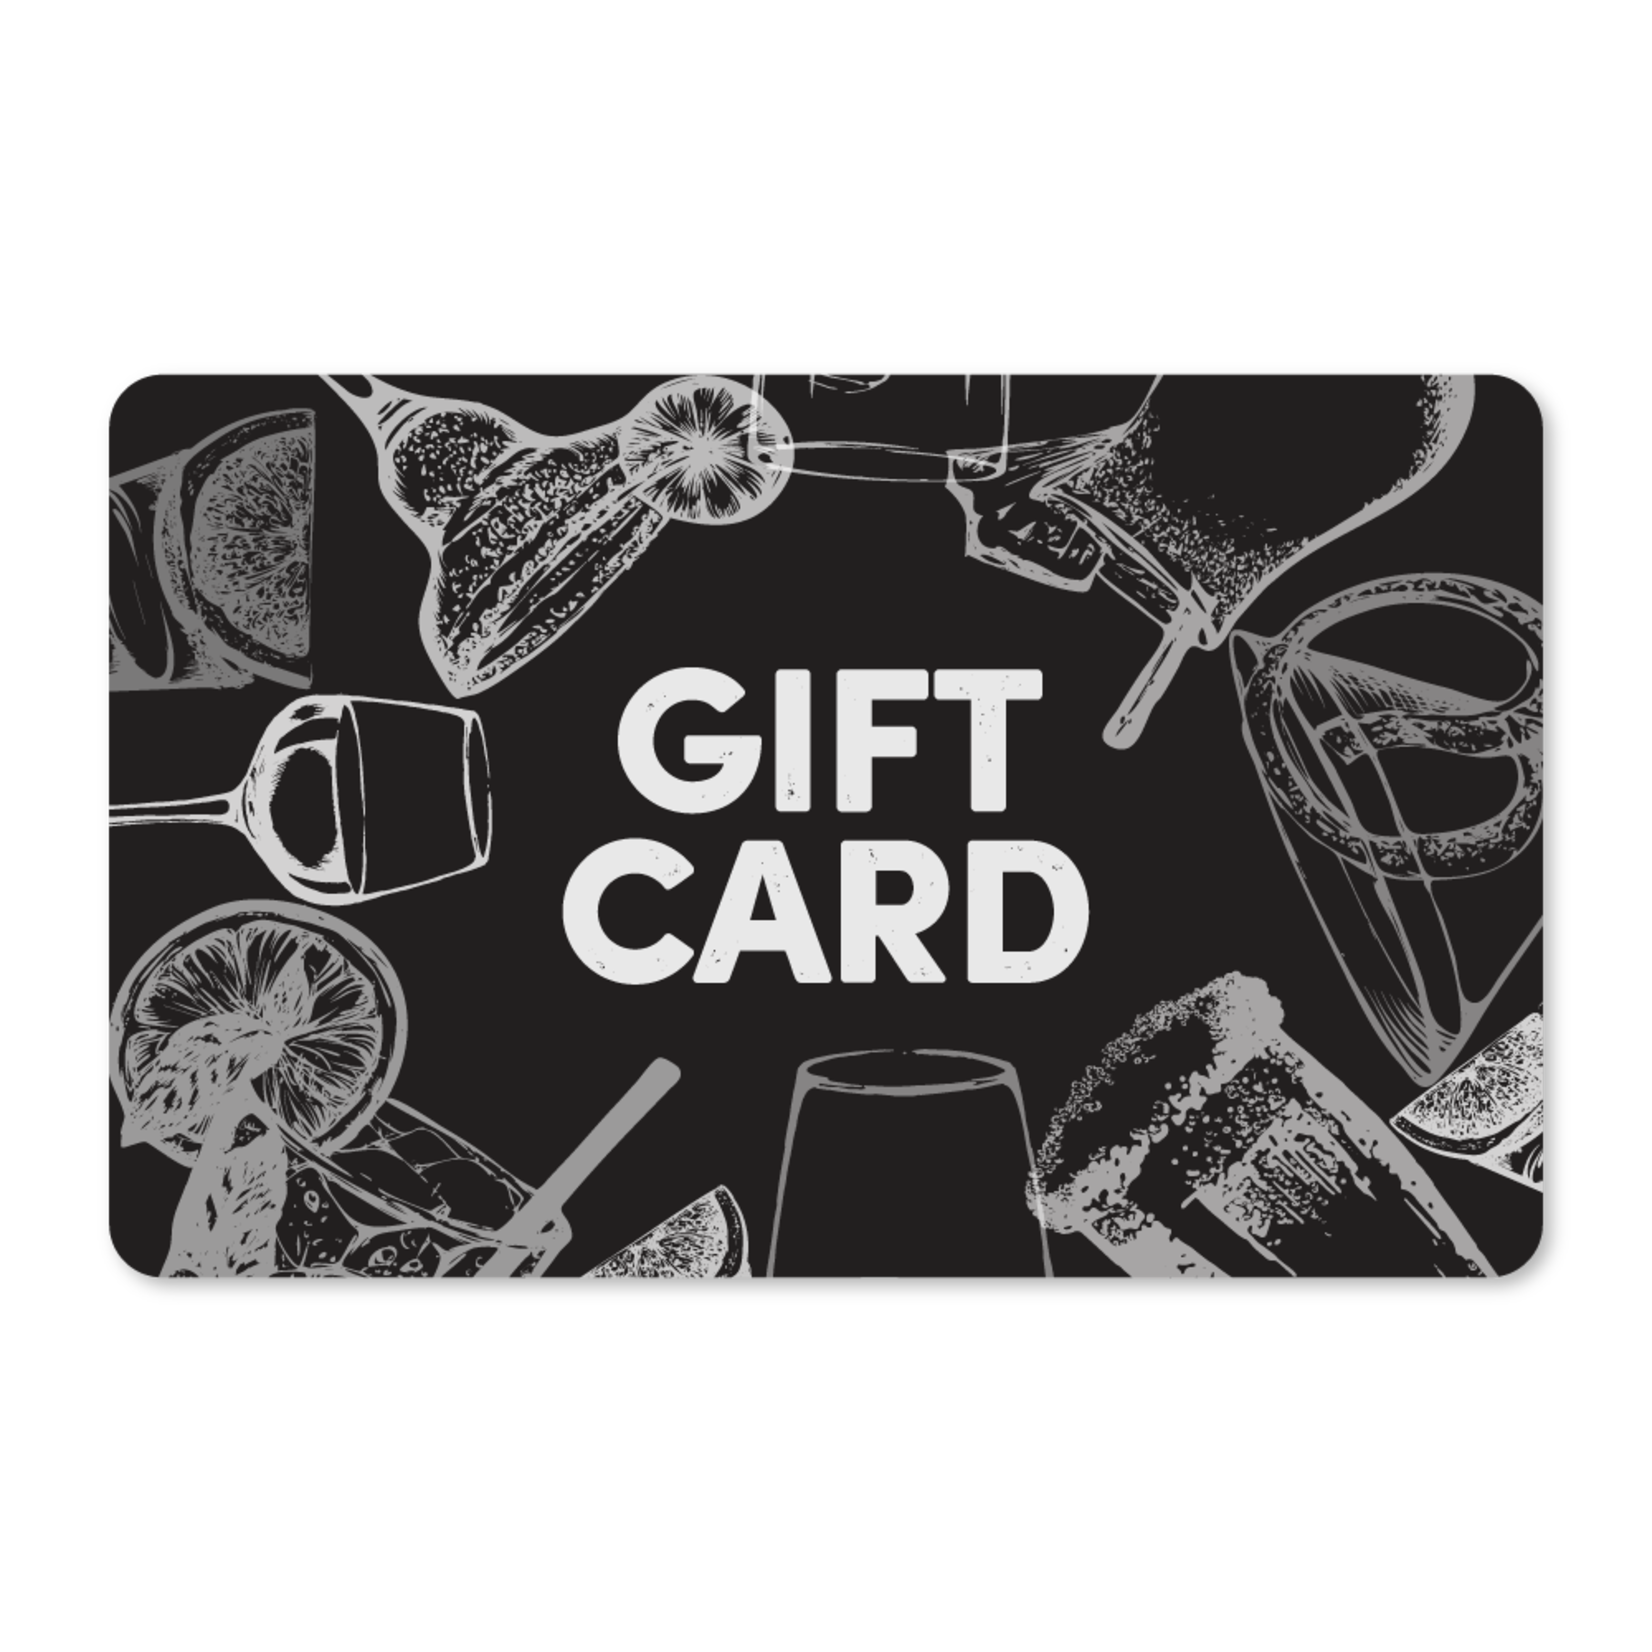 Gift Cards - Cocktails